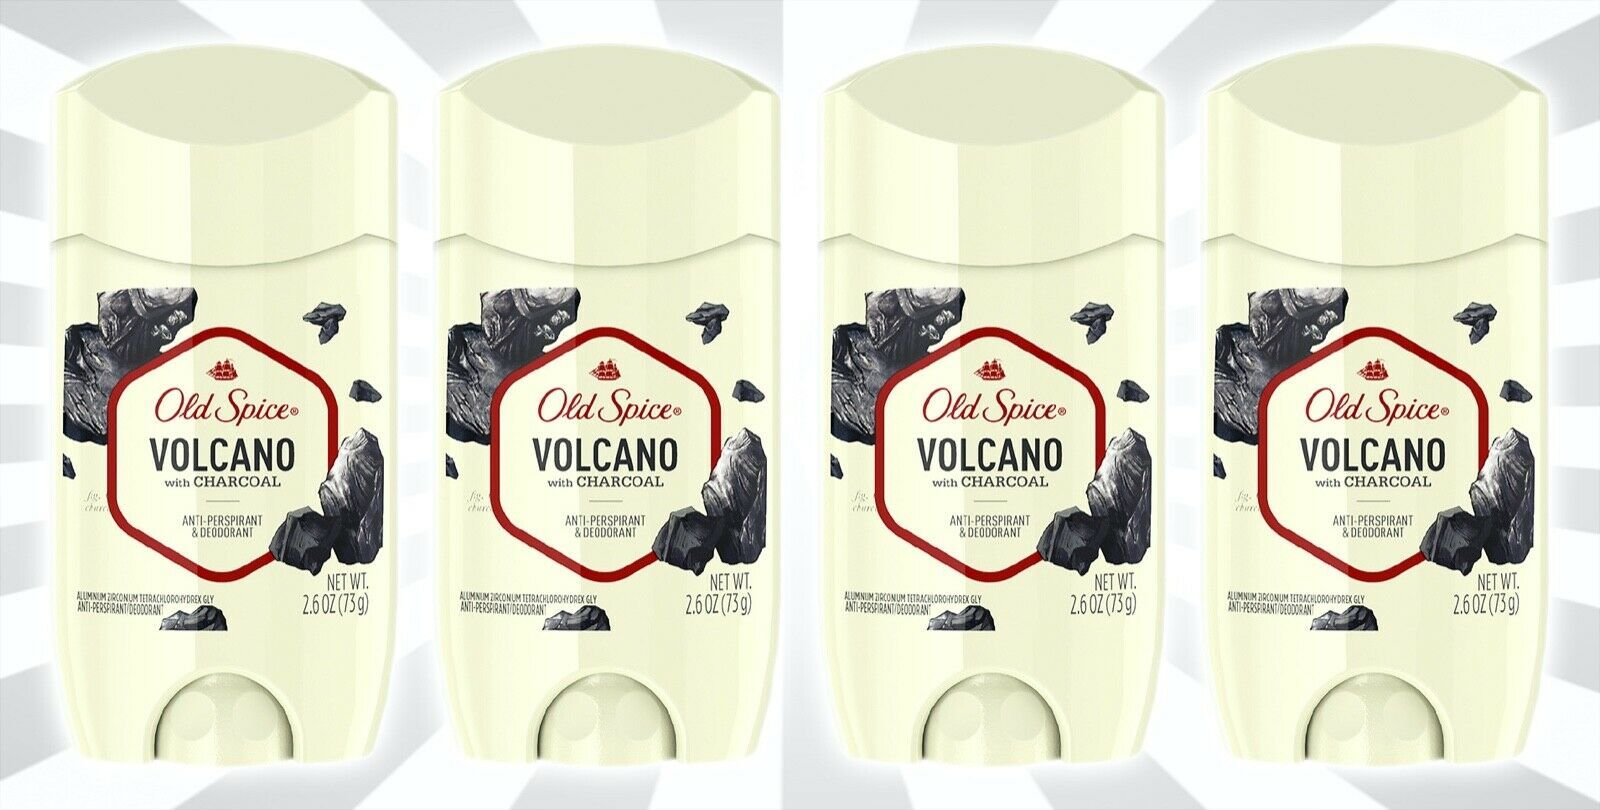 4 Old Spice Invisible Solid Antiperspirant & Deodorant Volcano w/ Charcoal 2.6OZ